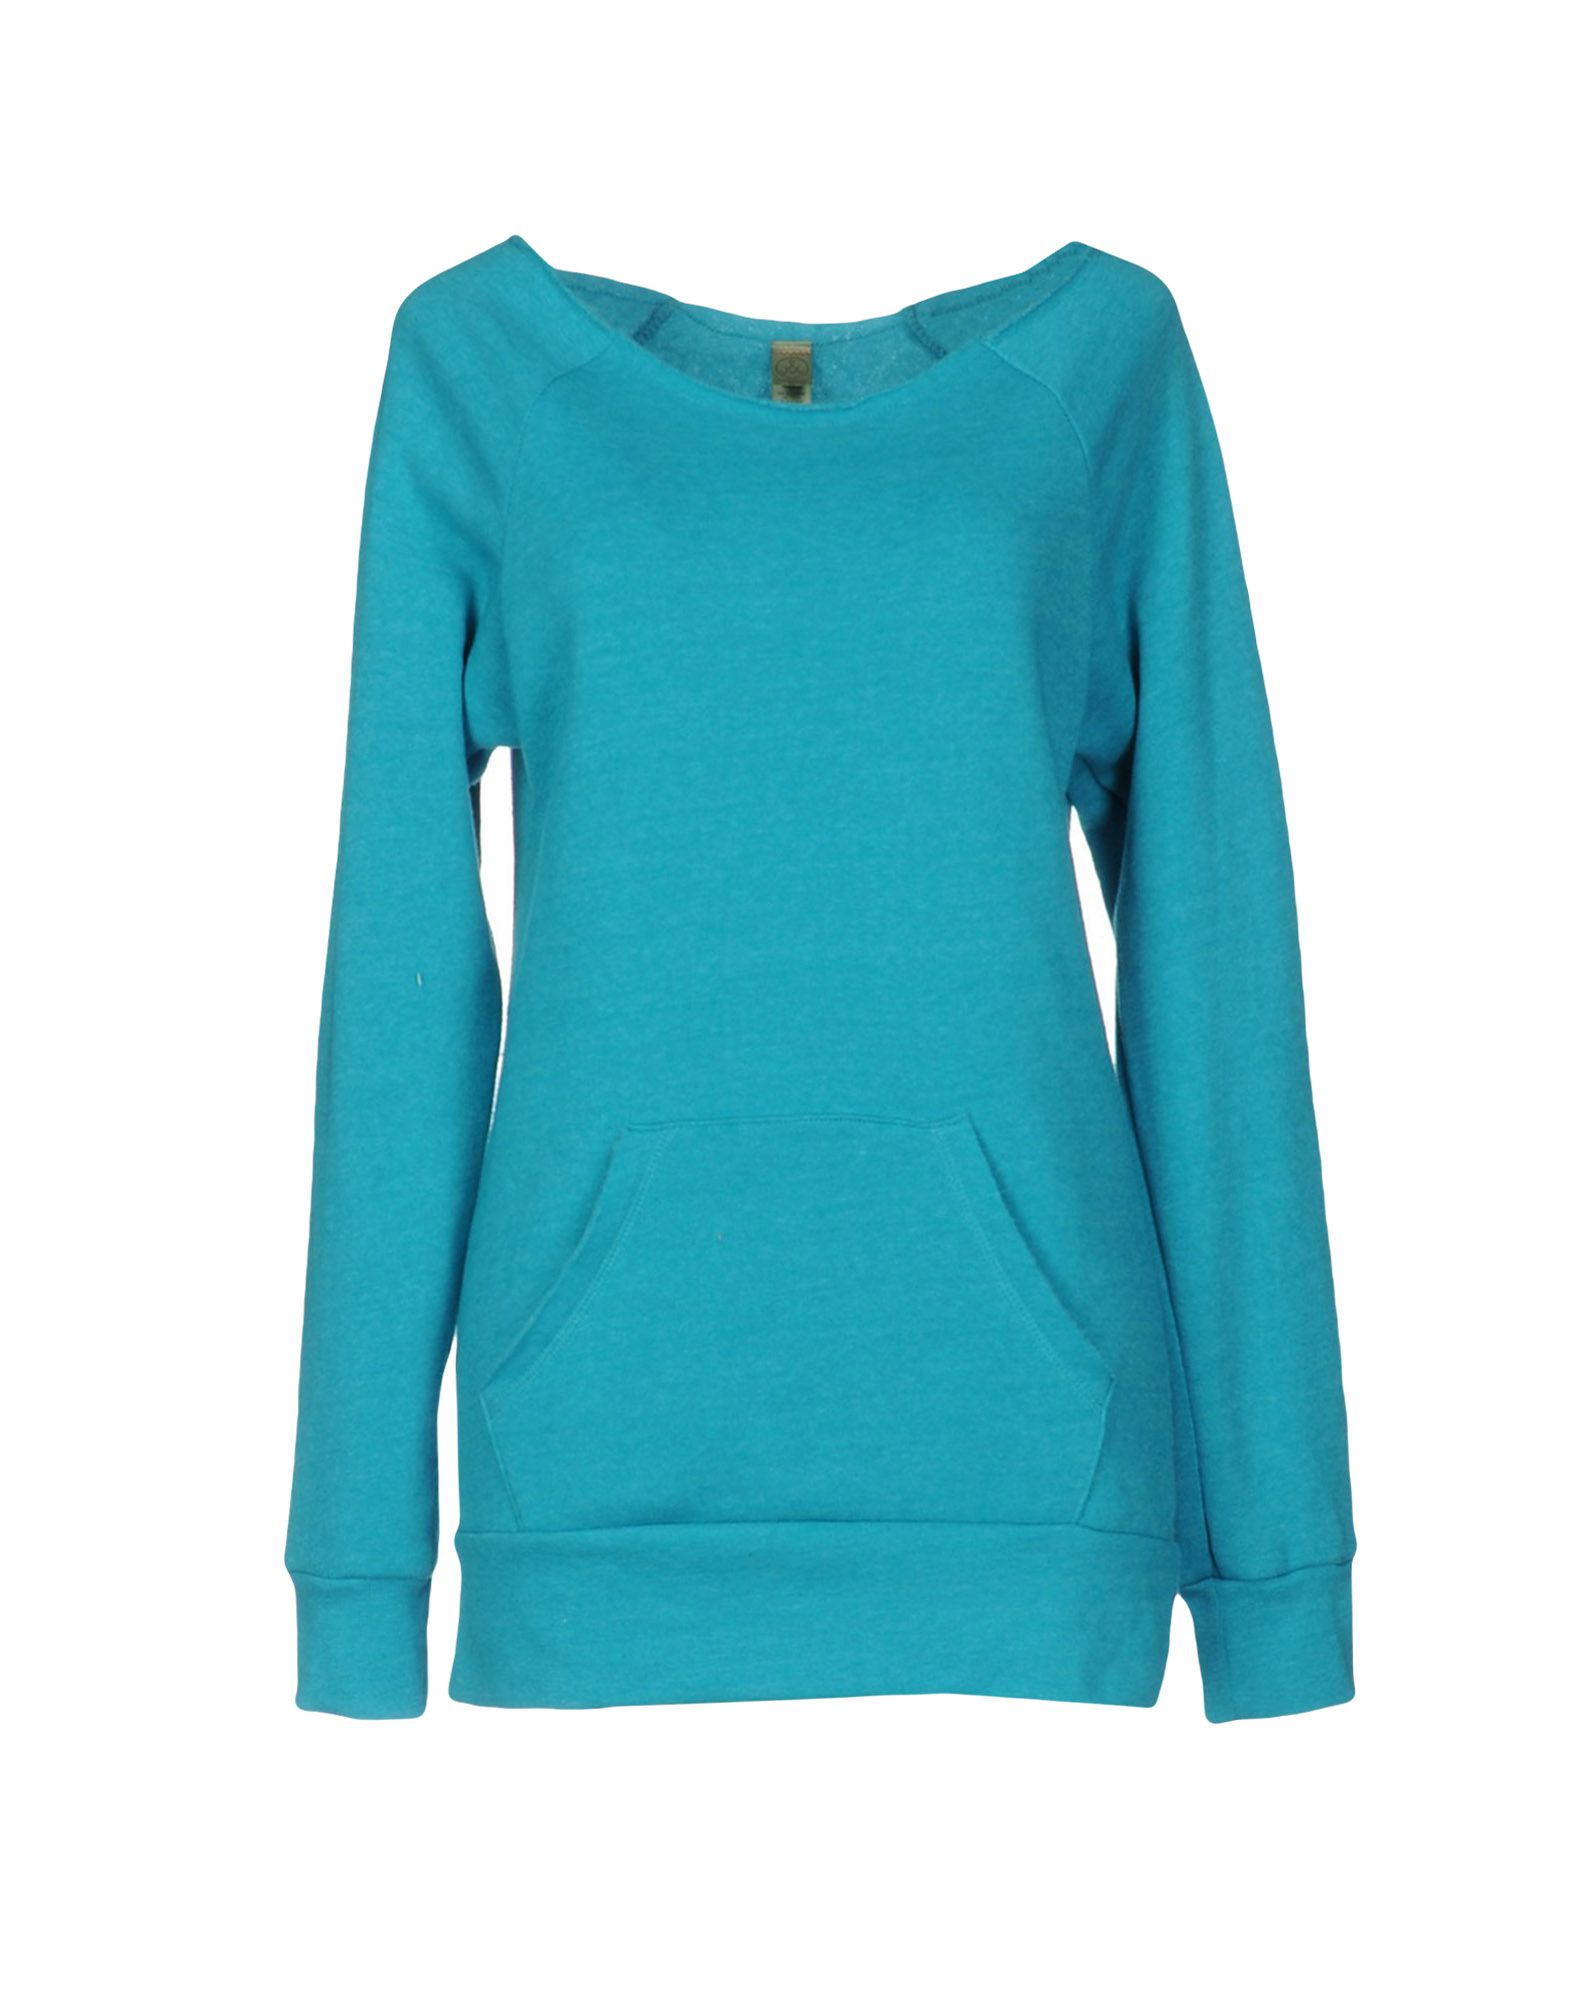 &Reg; Sweaters, Turquoise